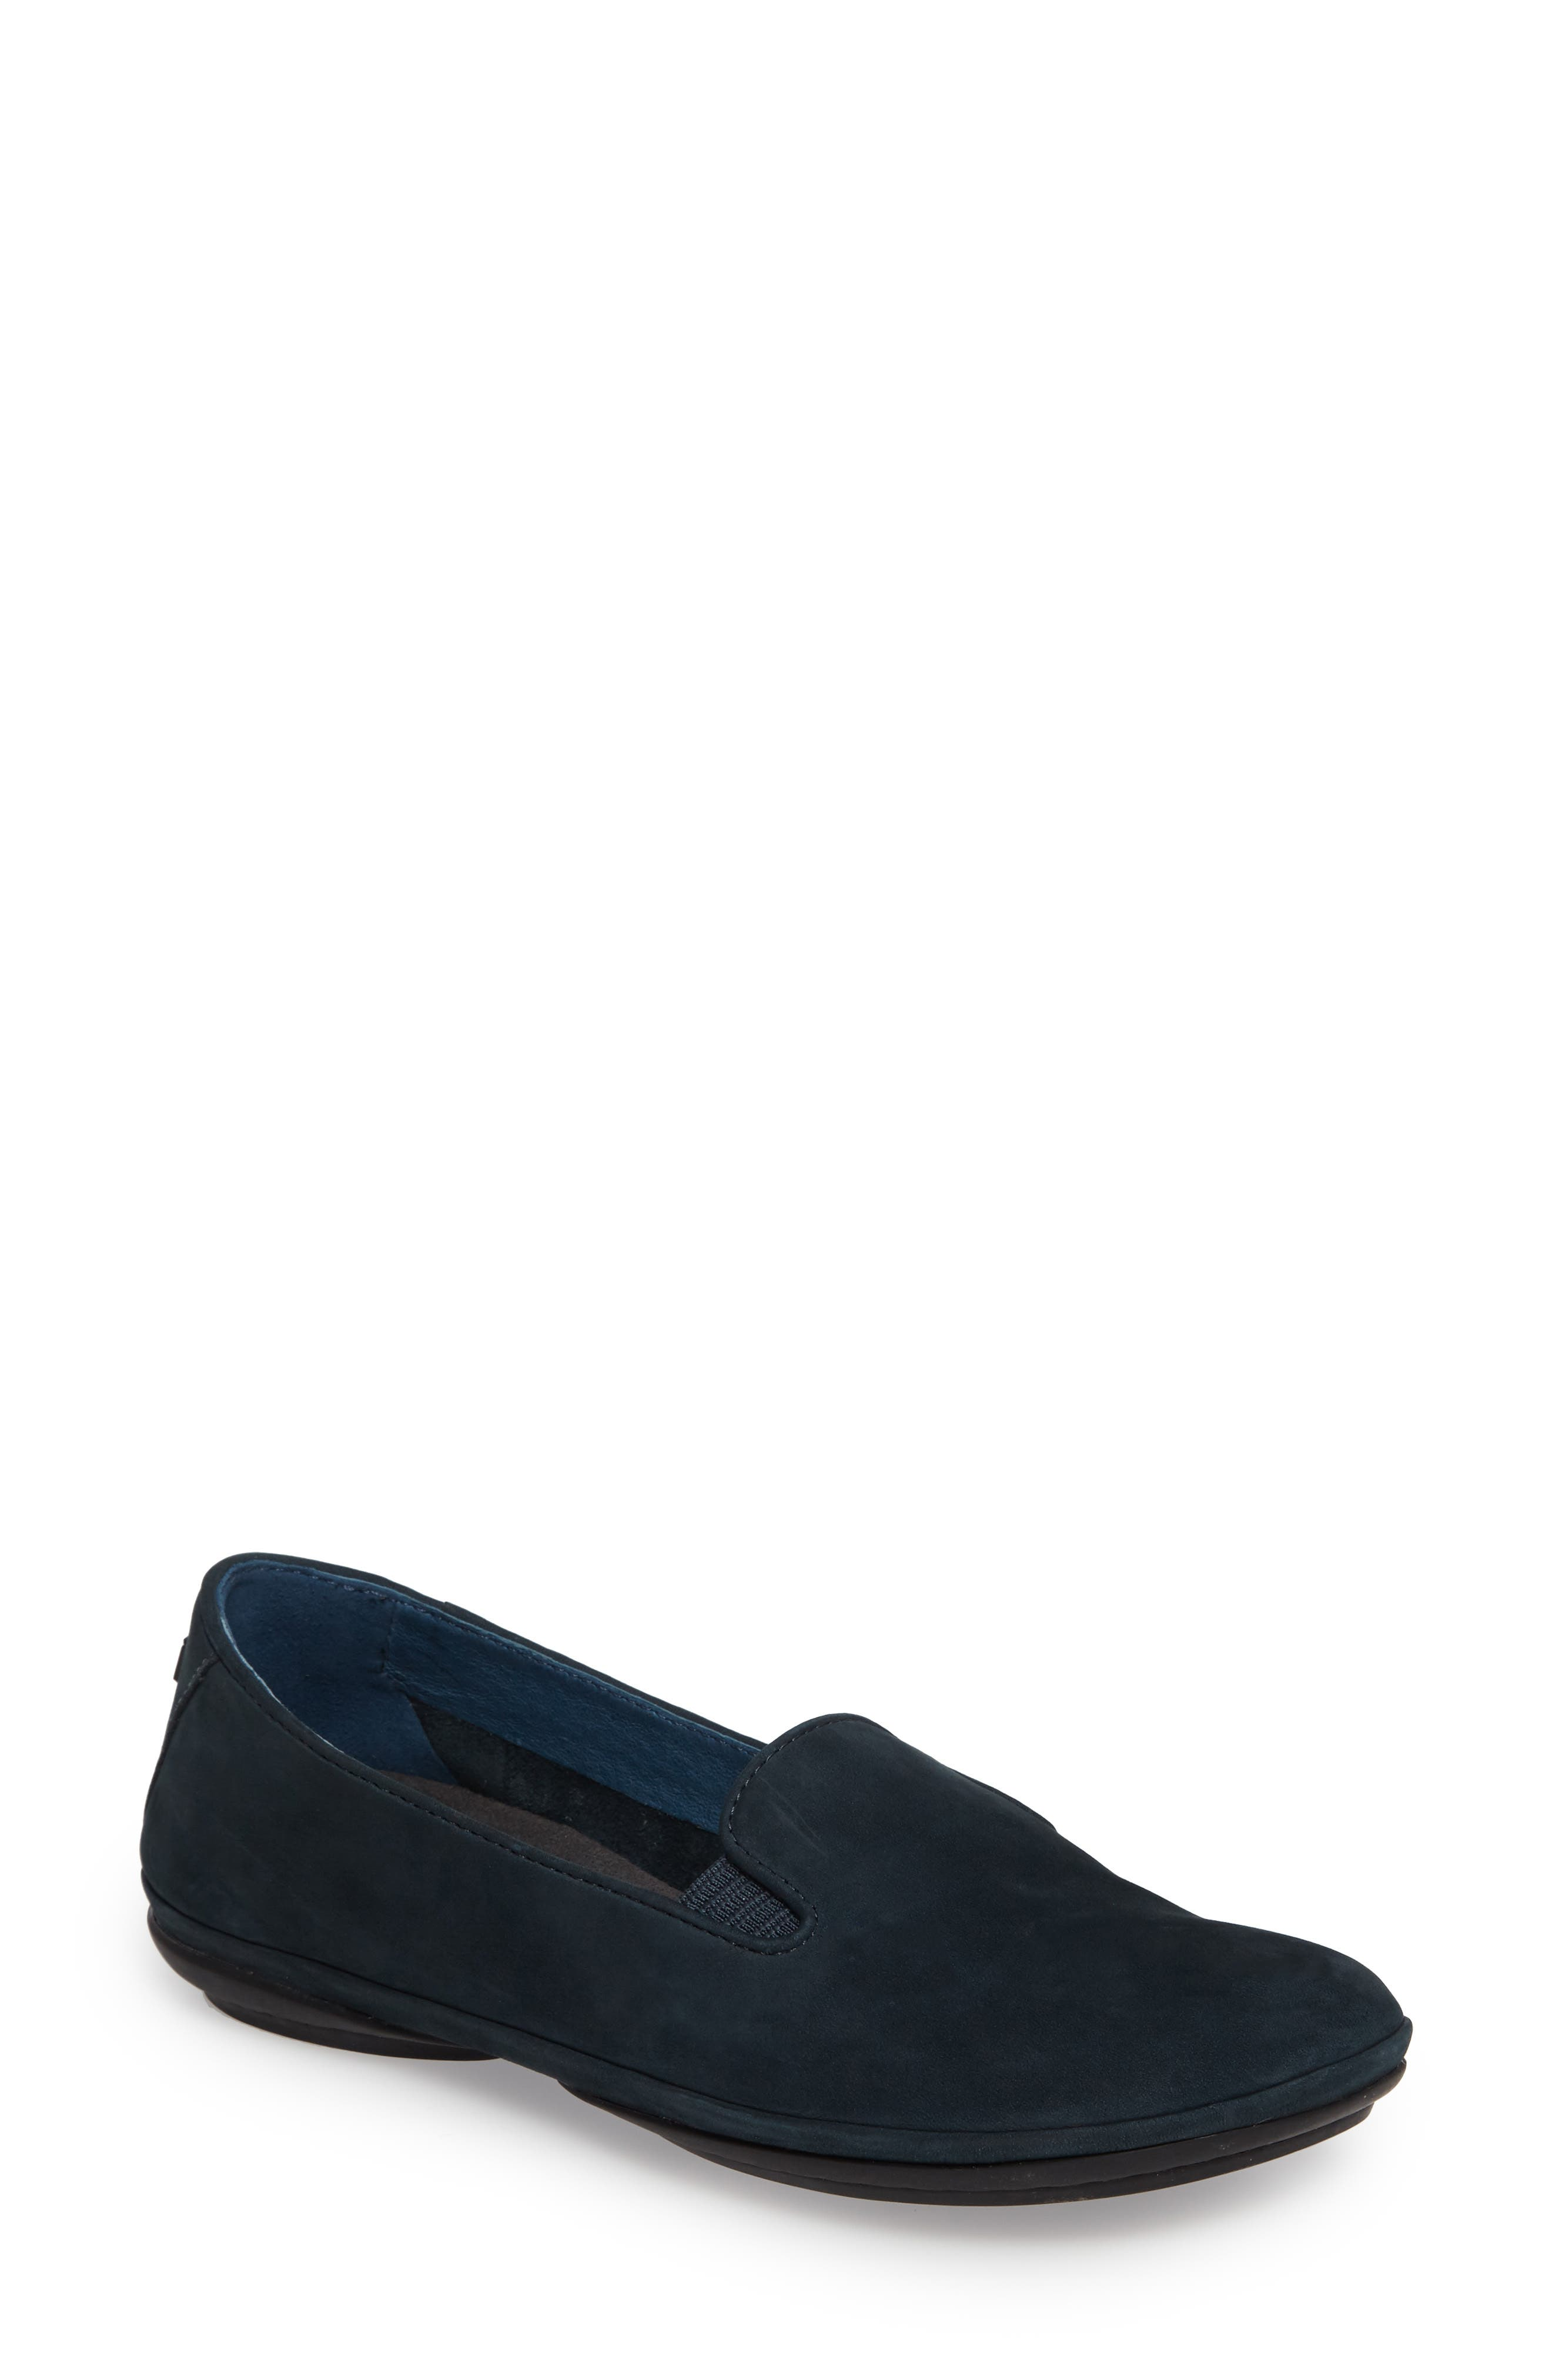 'Right Nina' Leather Flat,                             Main thumbnail 1, color,                             Dark Blue Leather